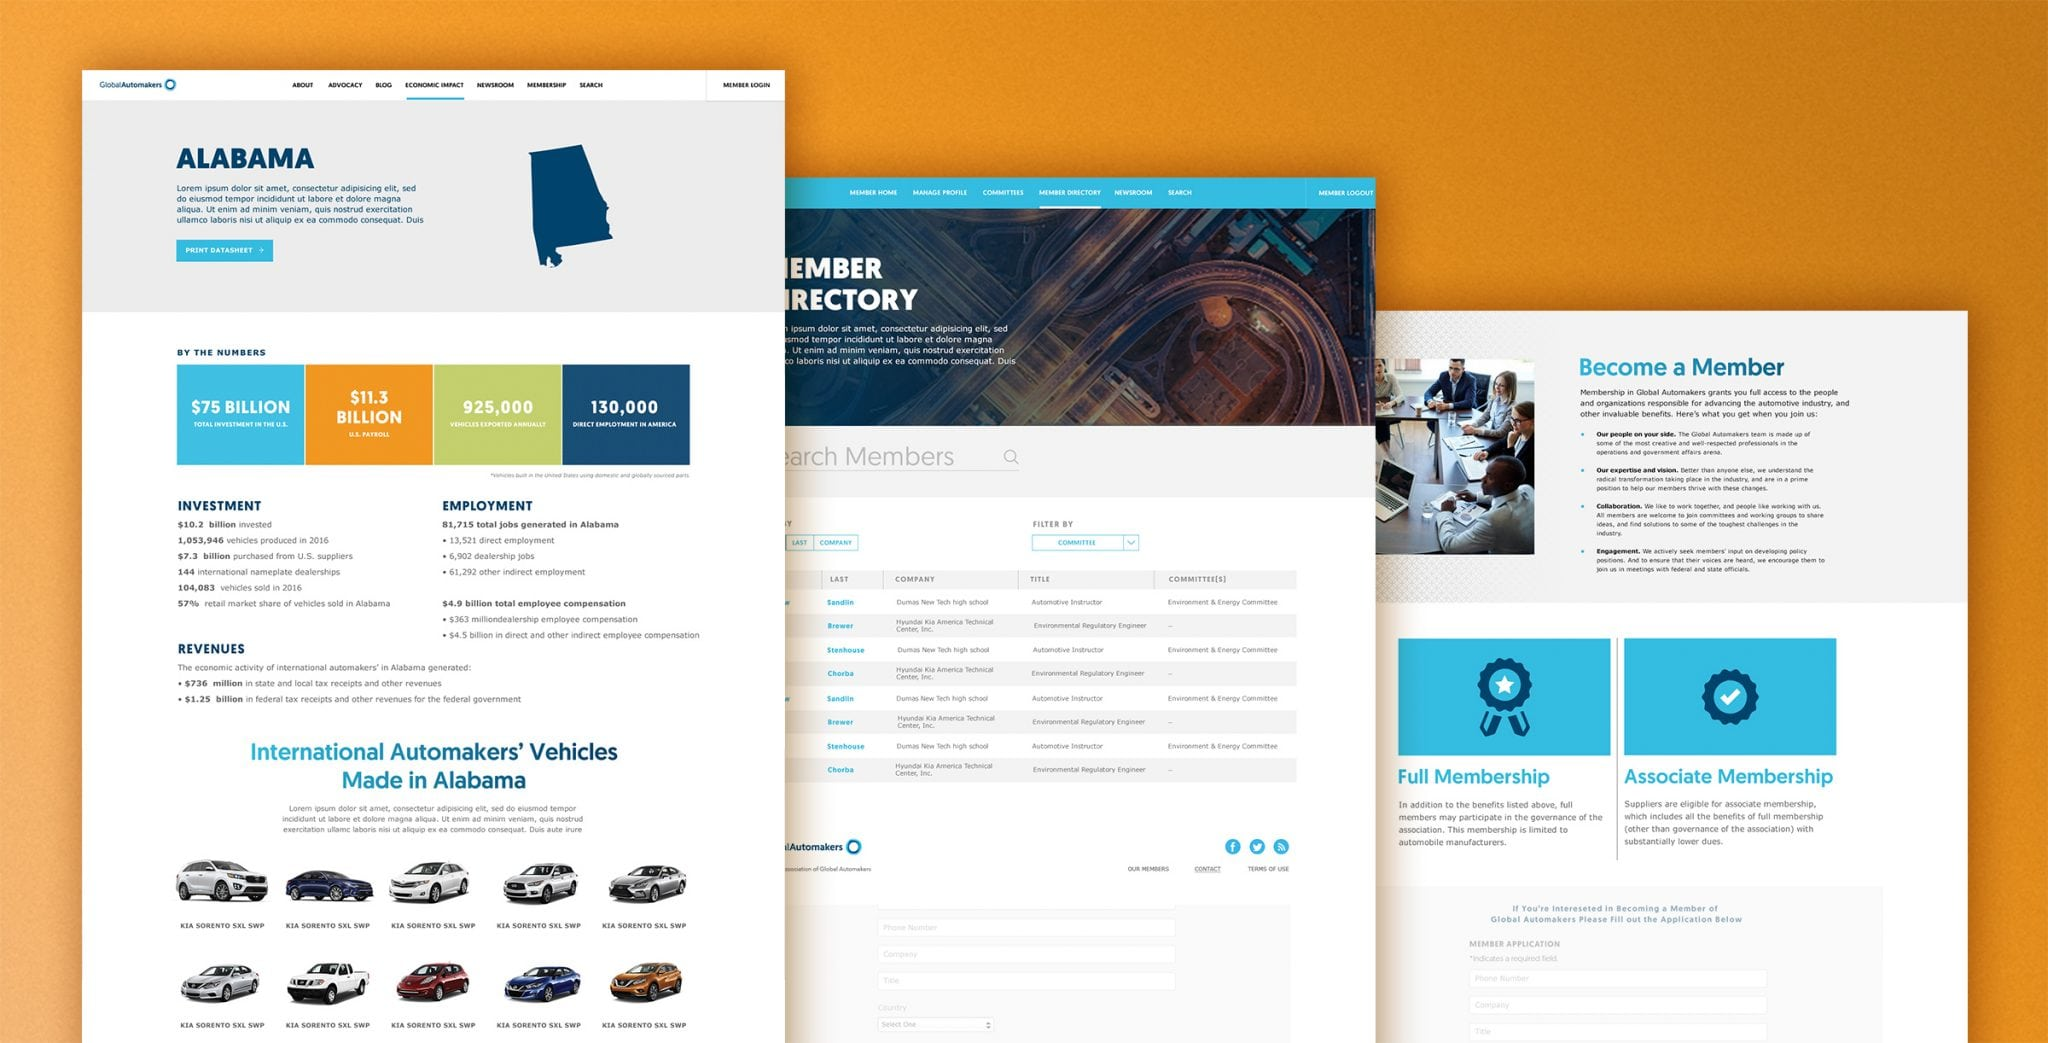 Global Automakers Website pages with orange background